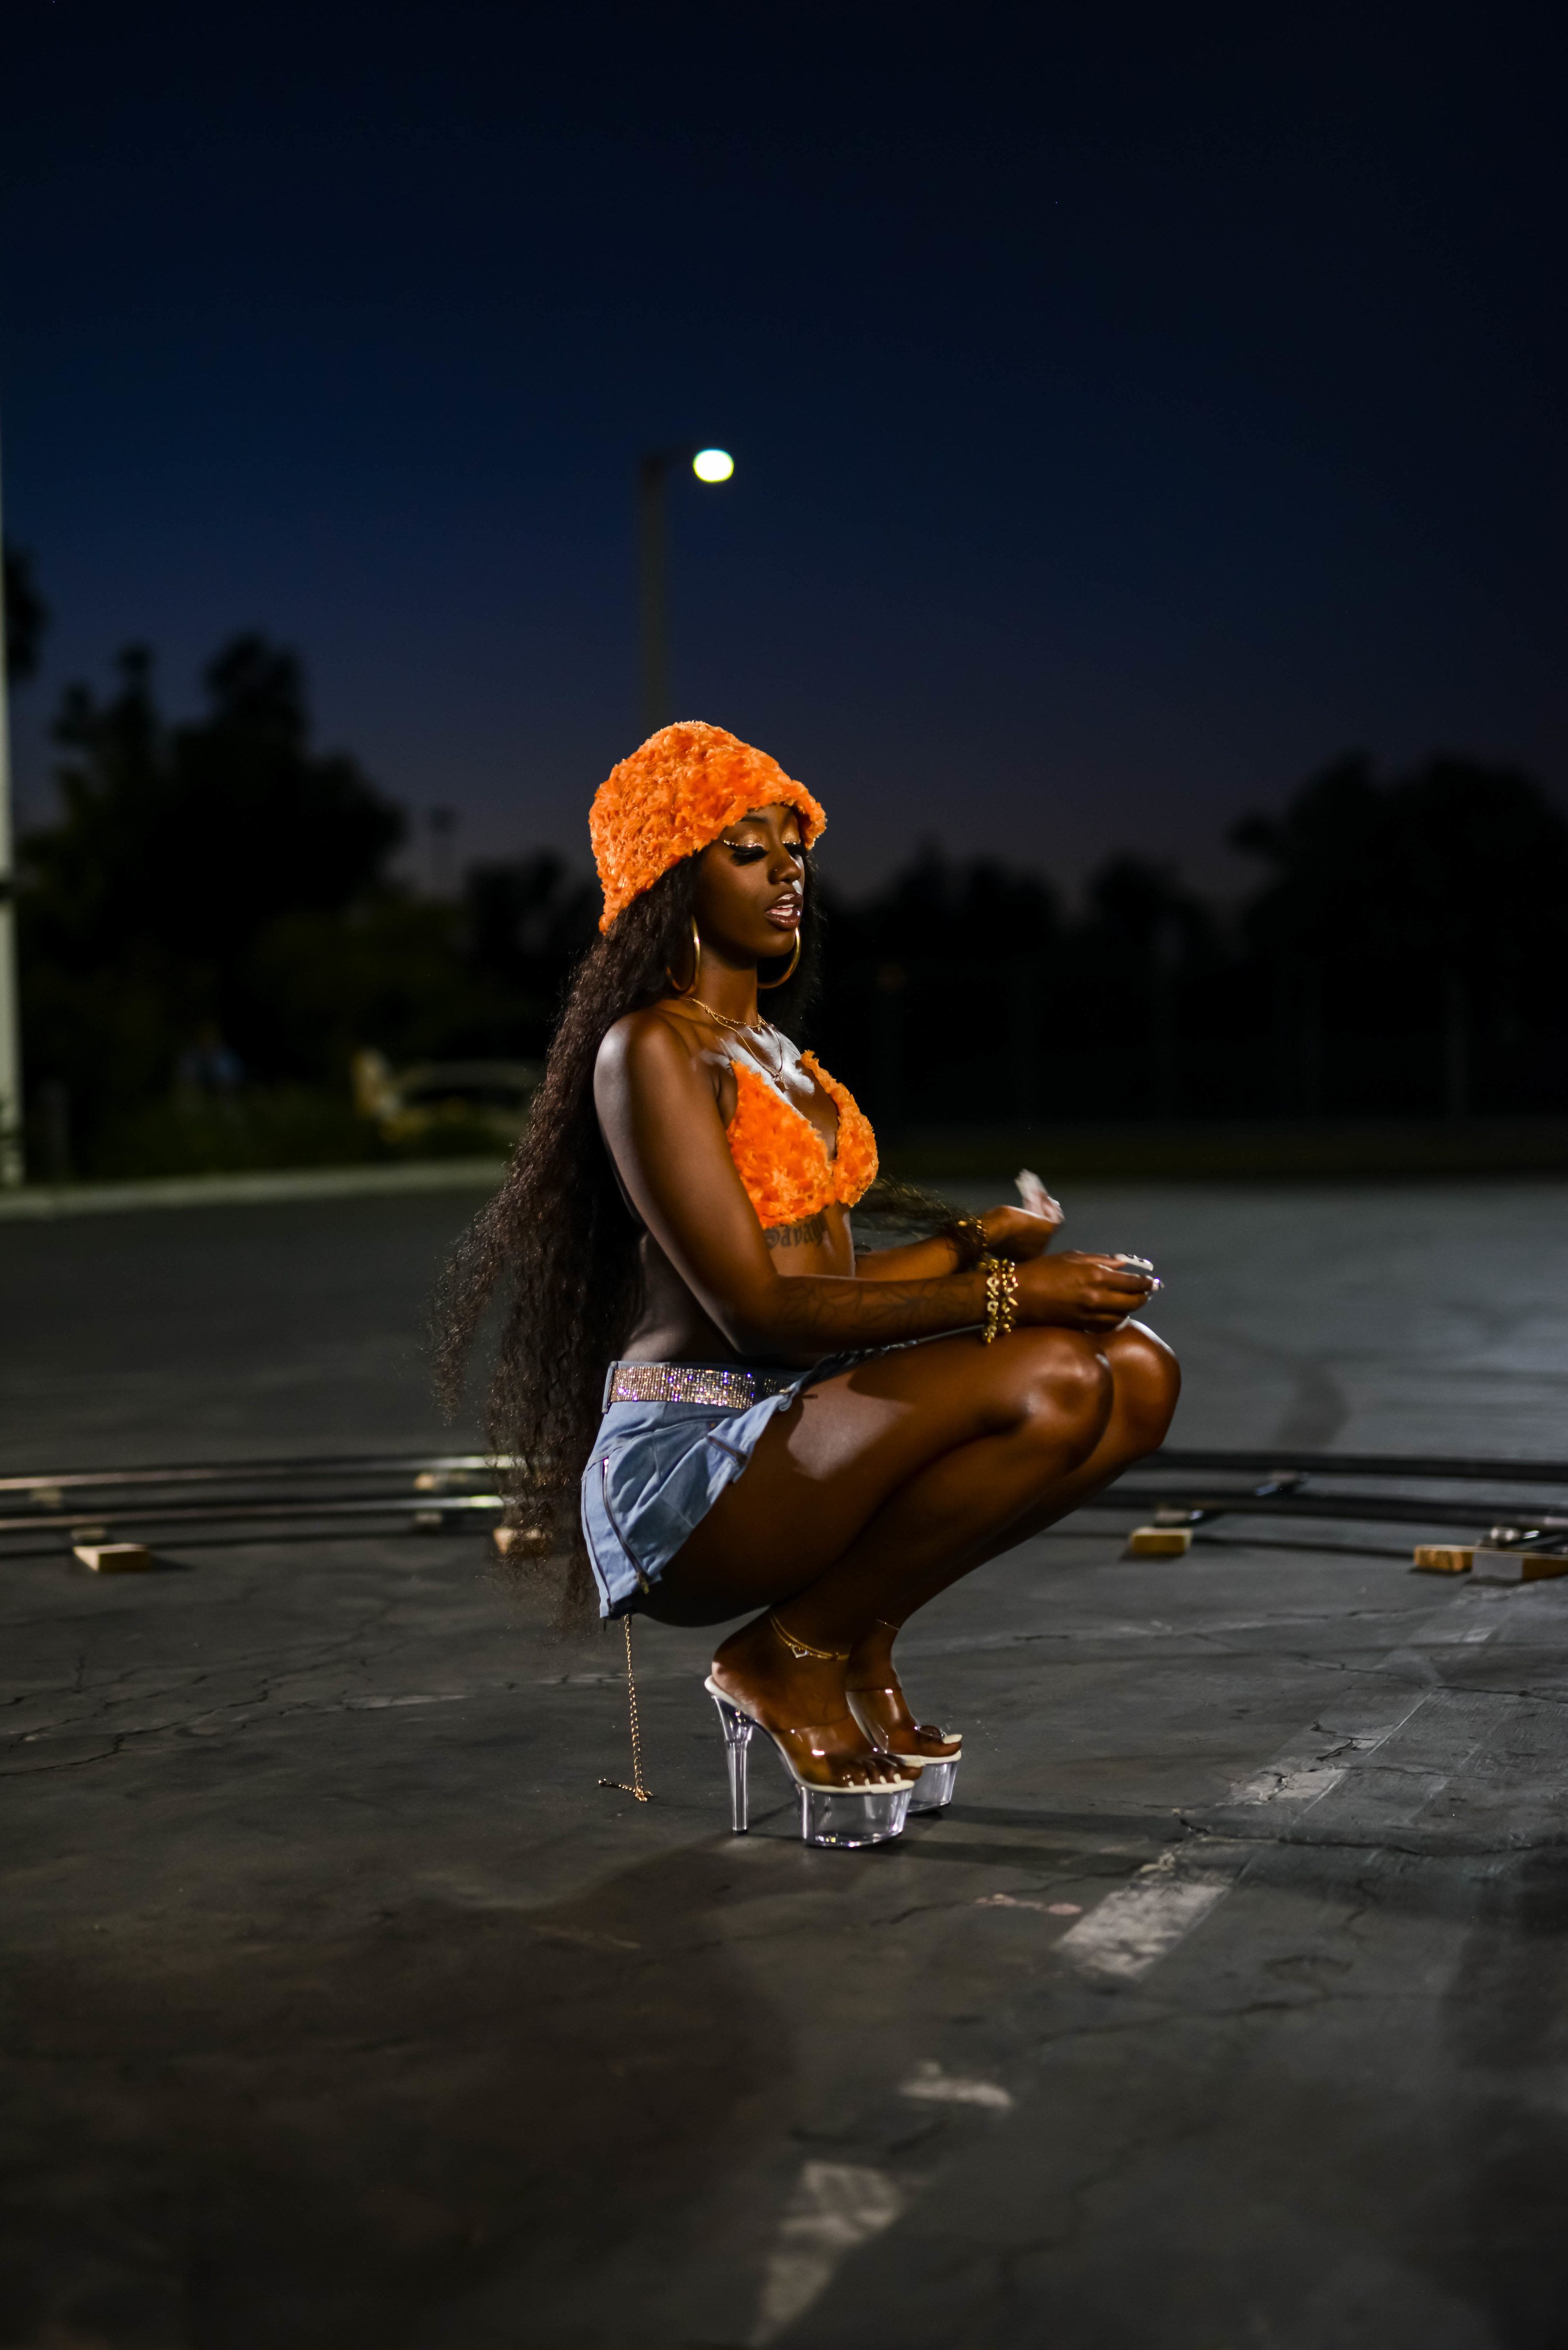 Flo Milli in an orange outfit on a music video set